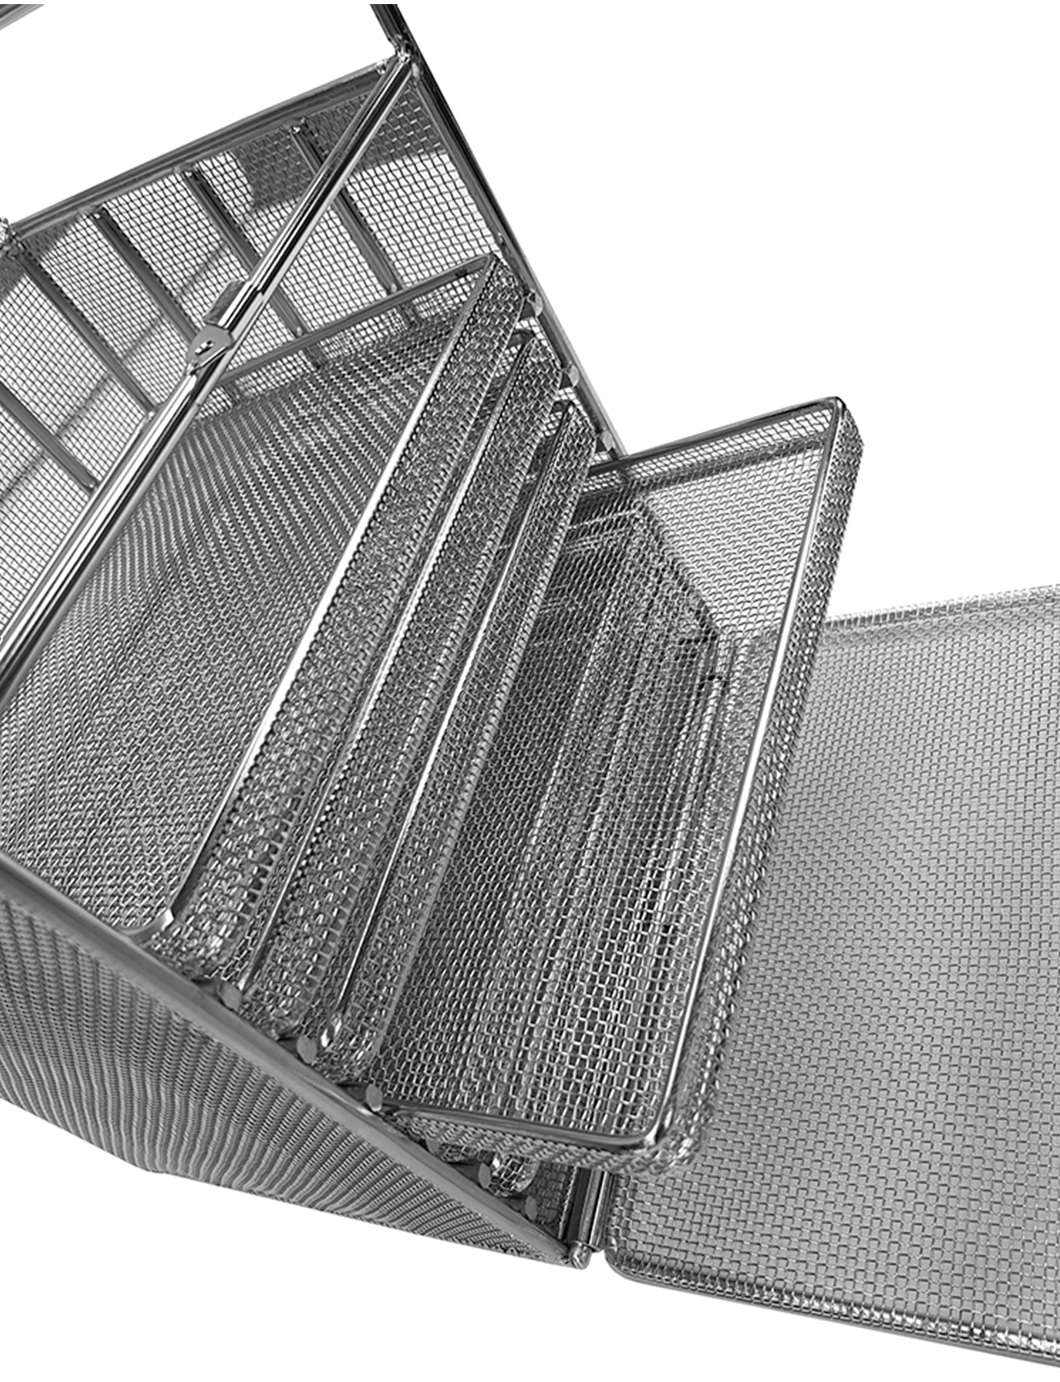 mesh chest of drawers cleaning basket